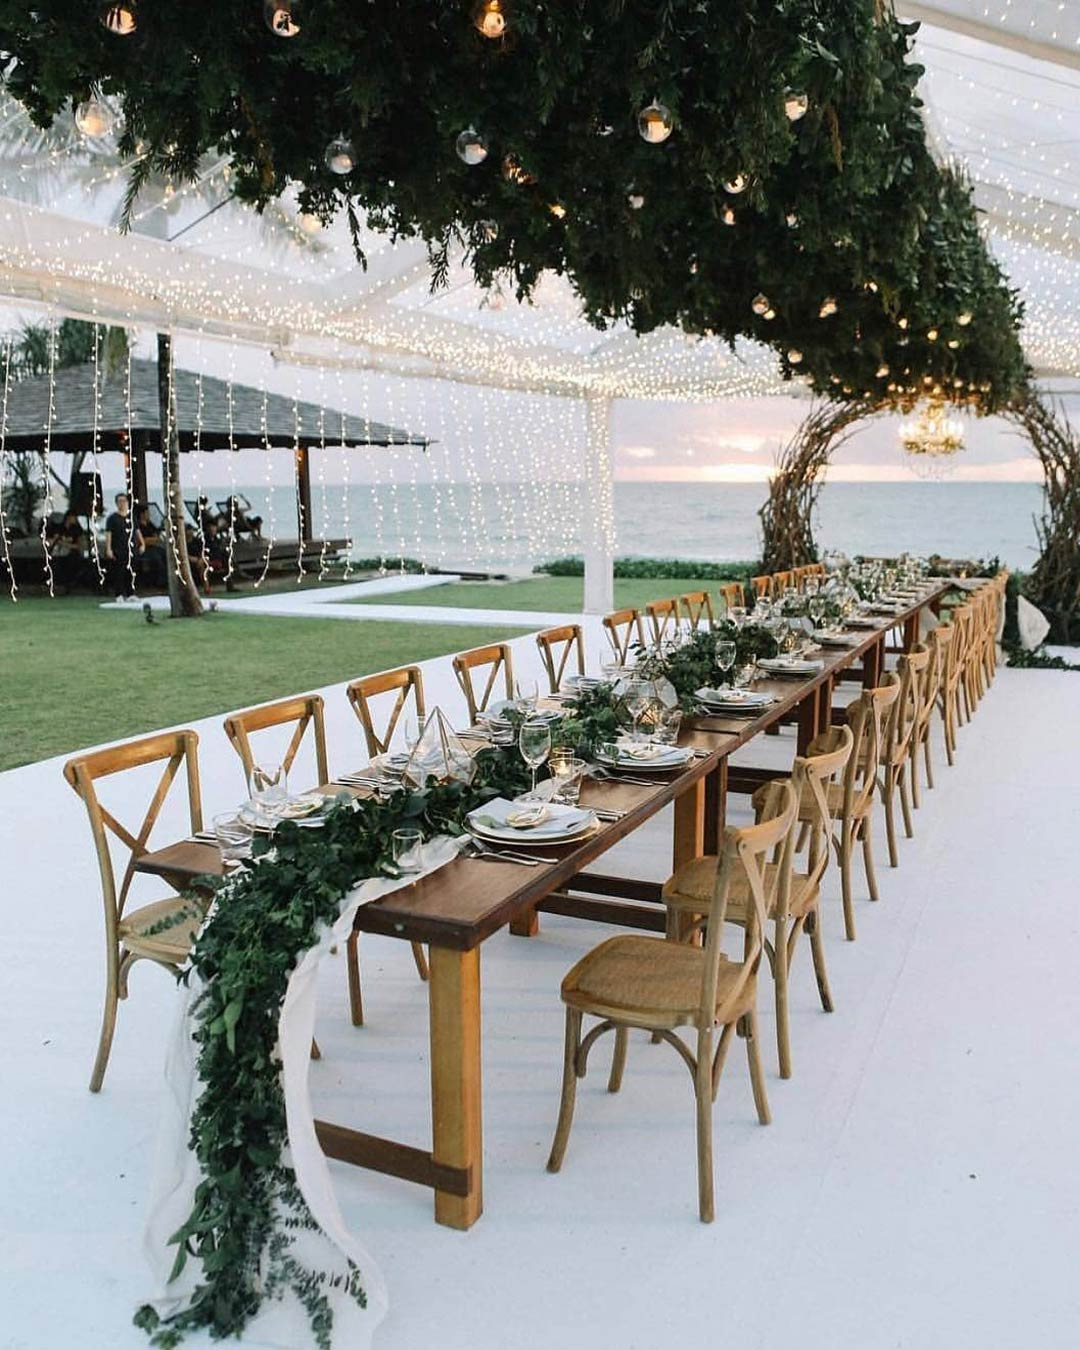 rustic wedding ideas lights seating table greenery